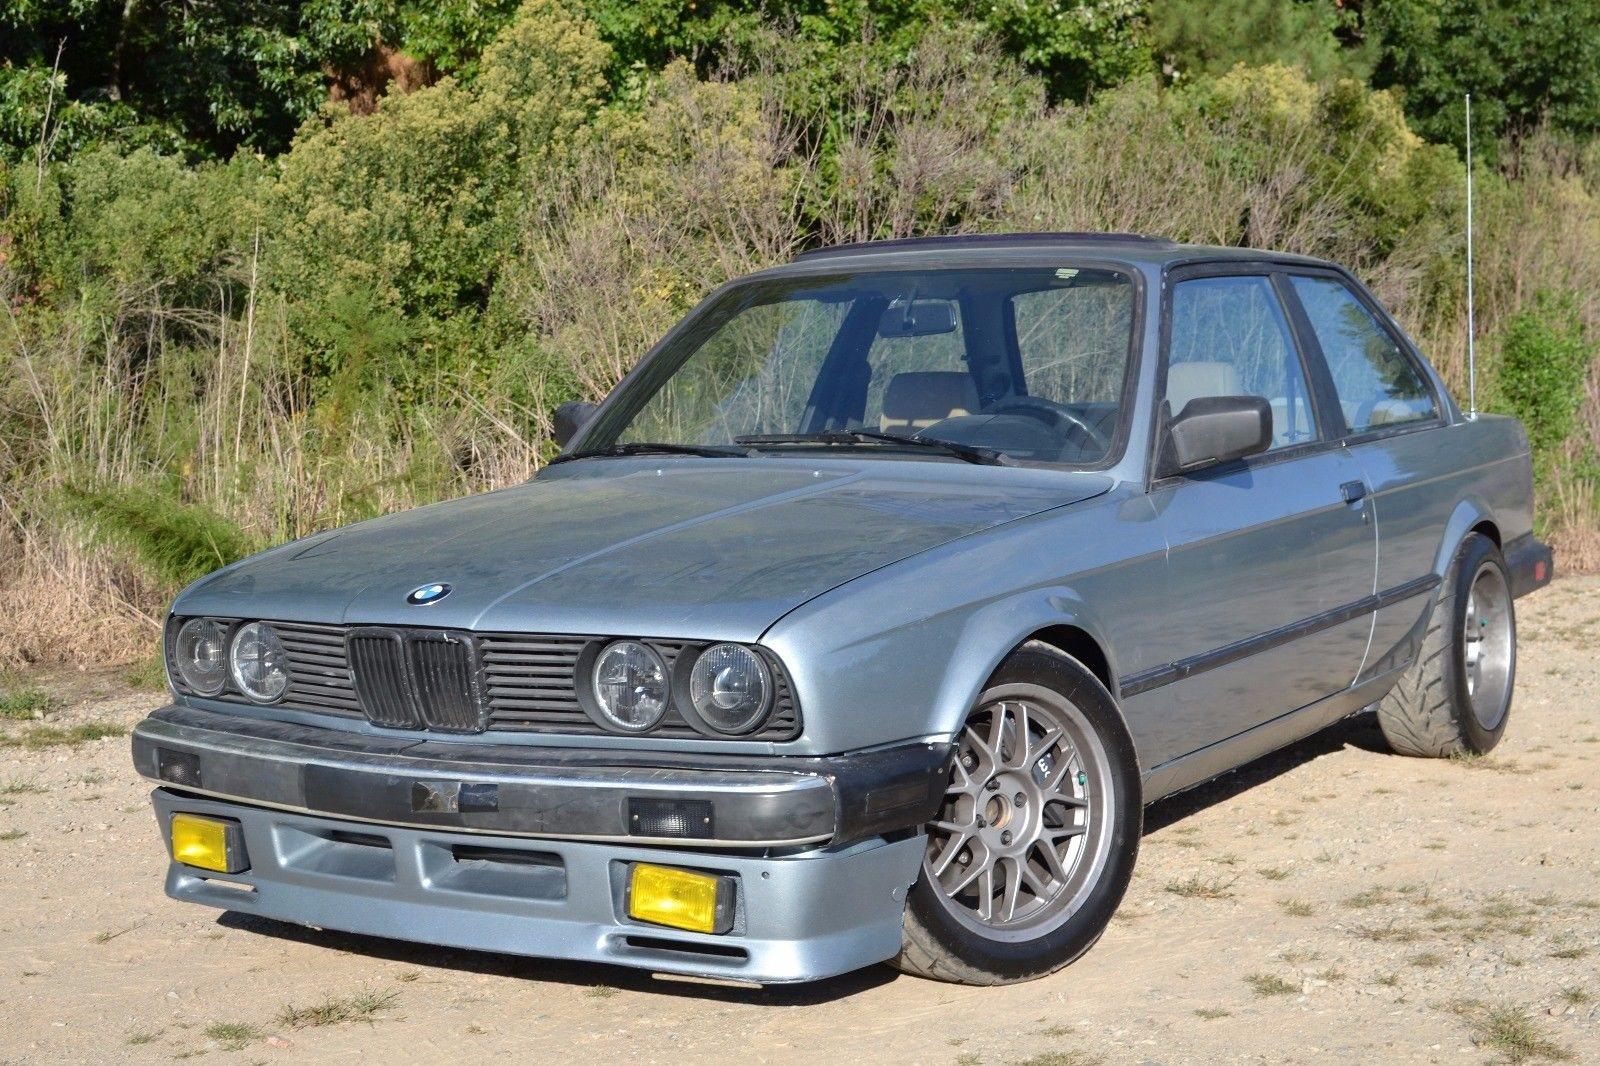 hight resolution of this 1985 bmw 318i is for sale on ebay in cary north carolina the factory inline four and five speed manual were swapped for a 5 7 l ls1 v8 and t56